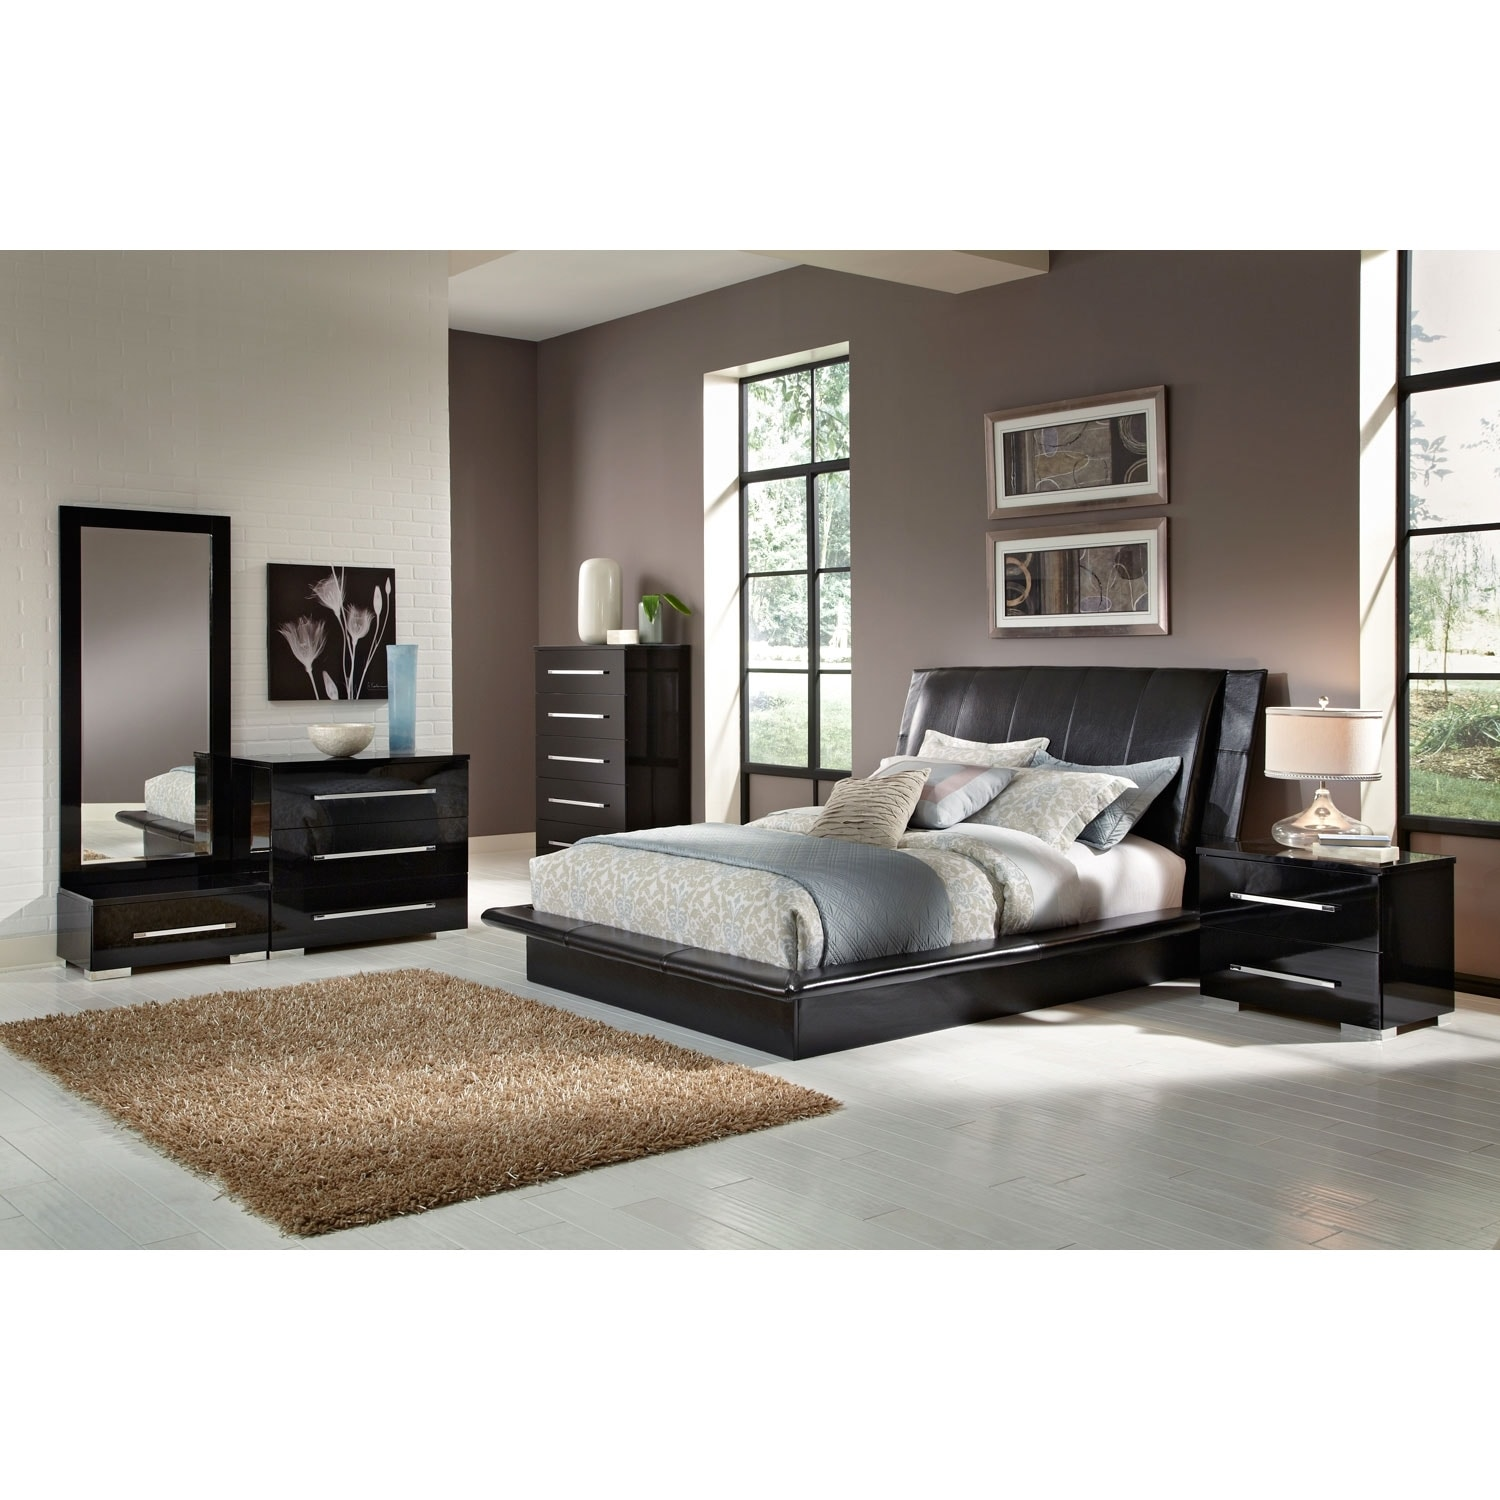 Bedroom Furniture - Dimora Black 7 Pc. Queen Bedroom (Alternate)